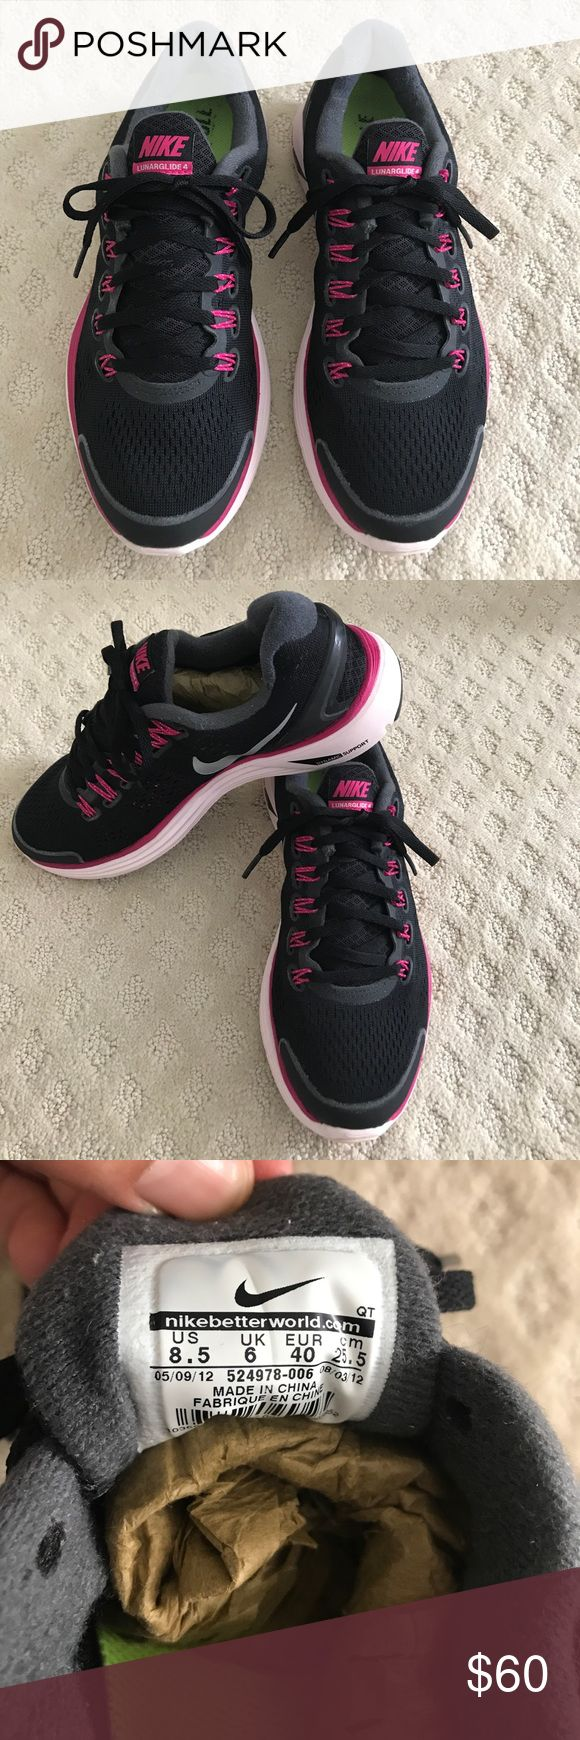 ⚡️Nike LunarGlide 4 Sneakers⚡️ Nike Lunarglide sneakers in great used condition! Very comfortable sneakers with extra dynamic support. Sneakers have some scratches in the back and one small scuff as pictured with flash. Size 8 1/2. Color- black, fuchsia and baby pink. Nike Shoes Sneakers